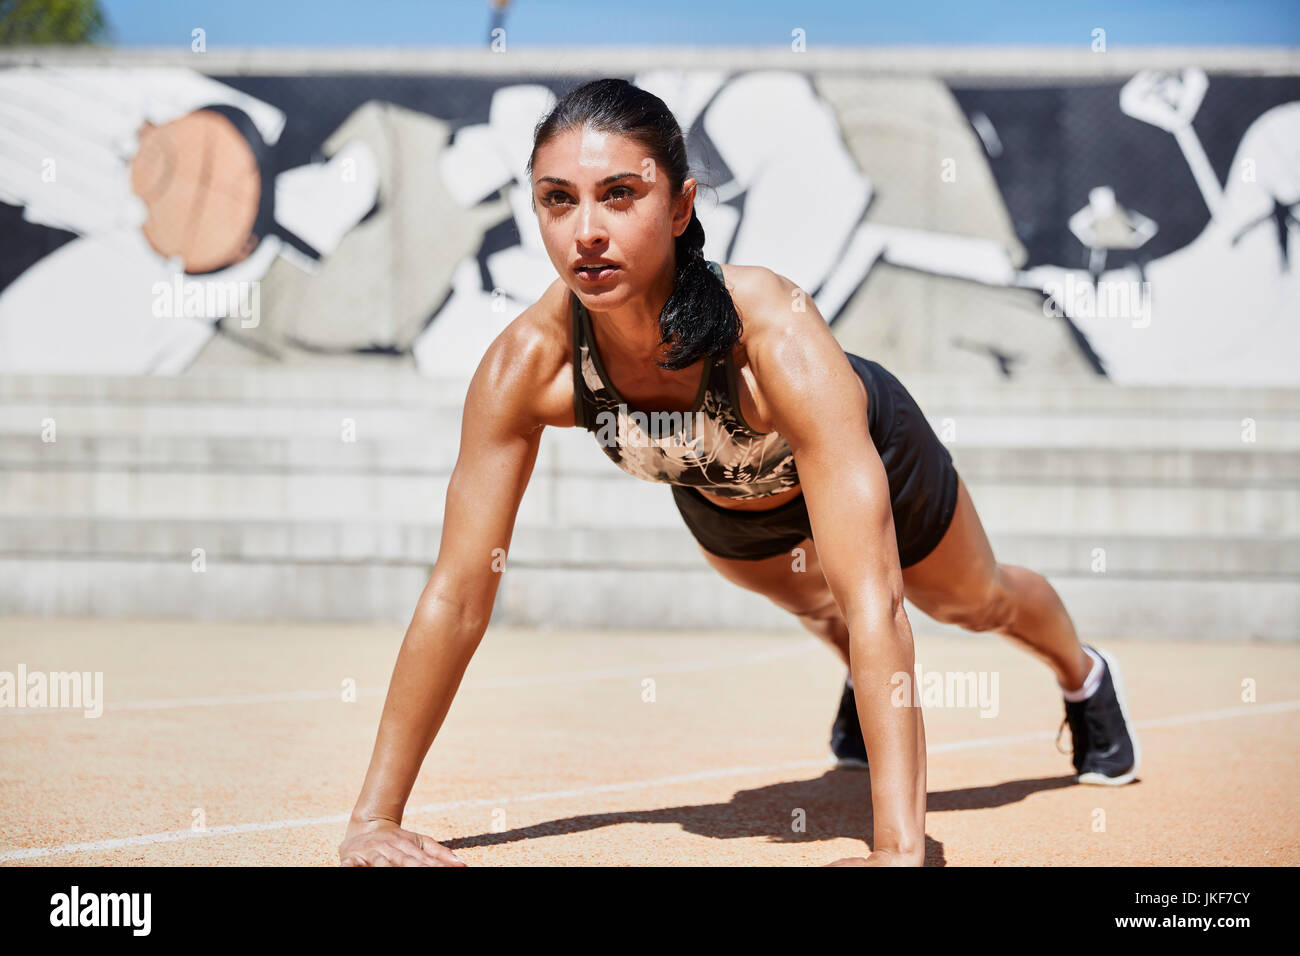 Fit woman doing pushups outdoors - Stock Image